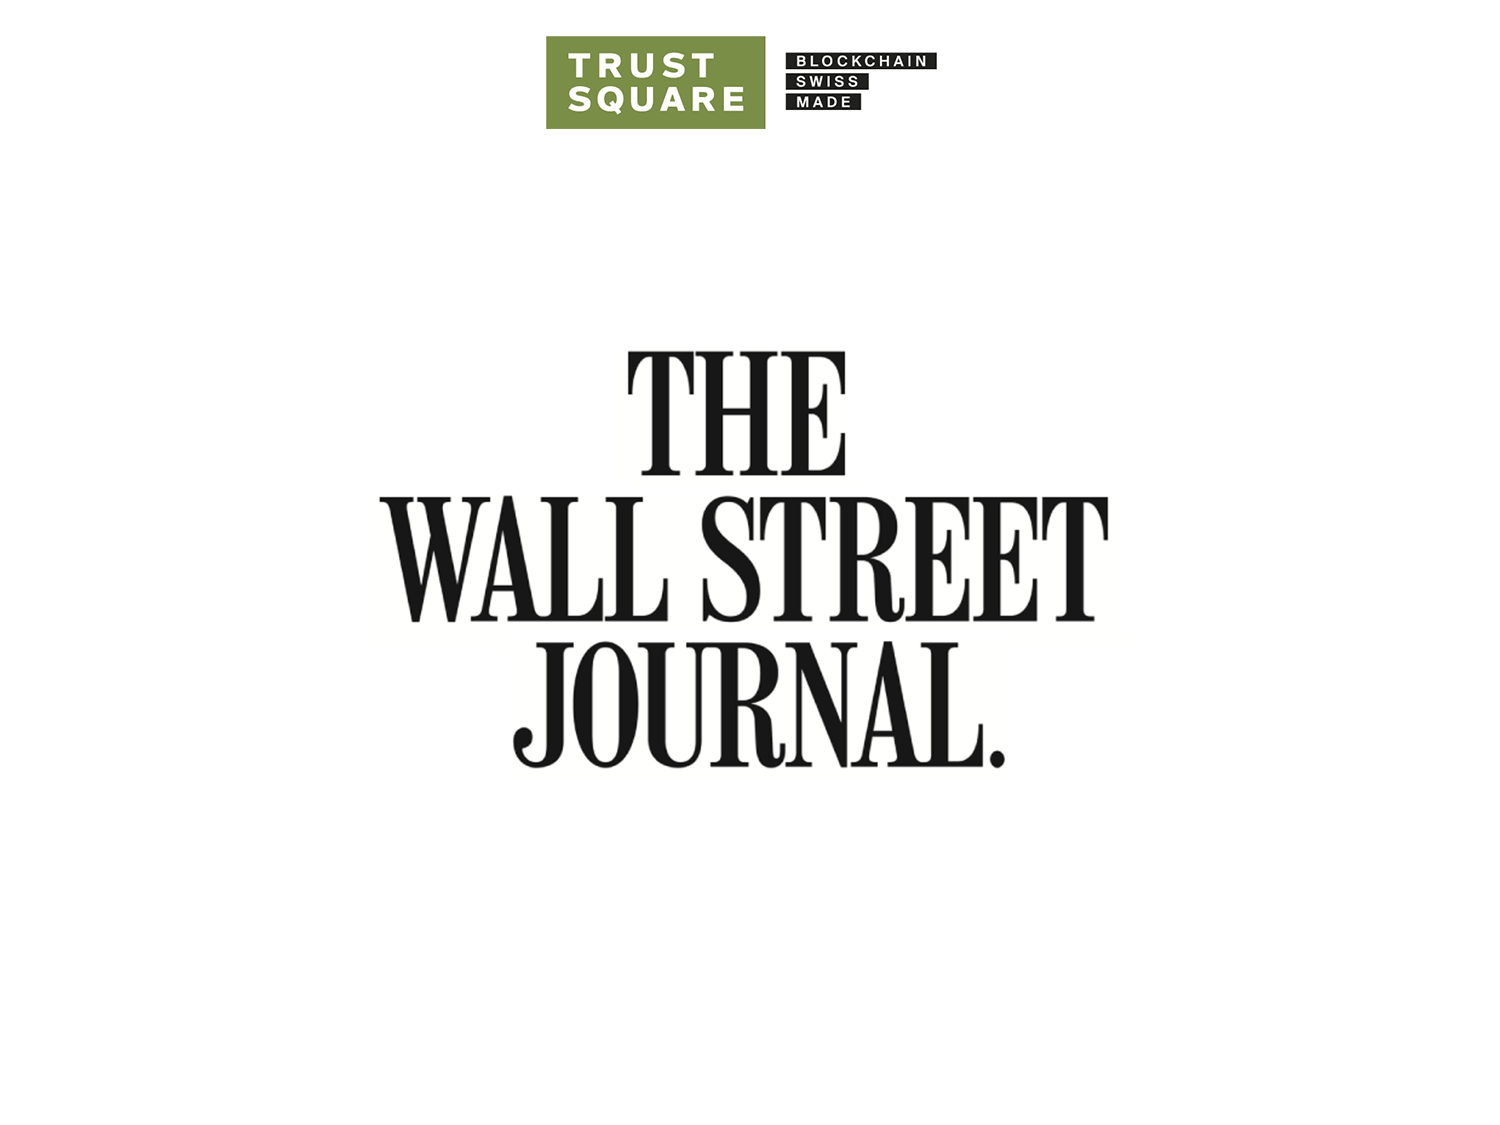 The Wall Street Journal and Trust Square Logo